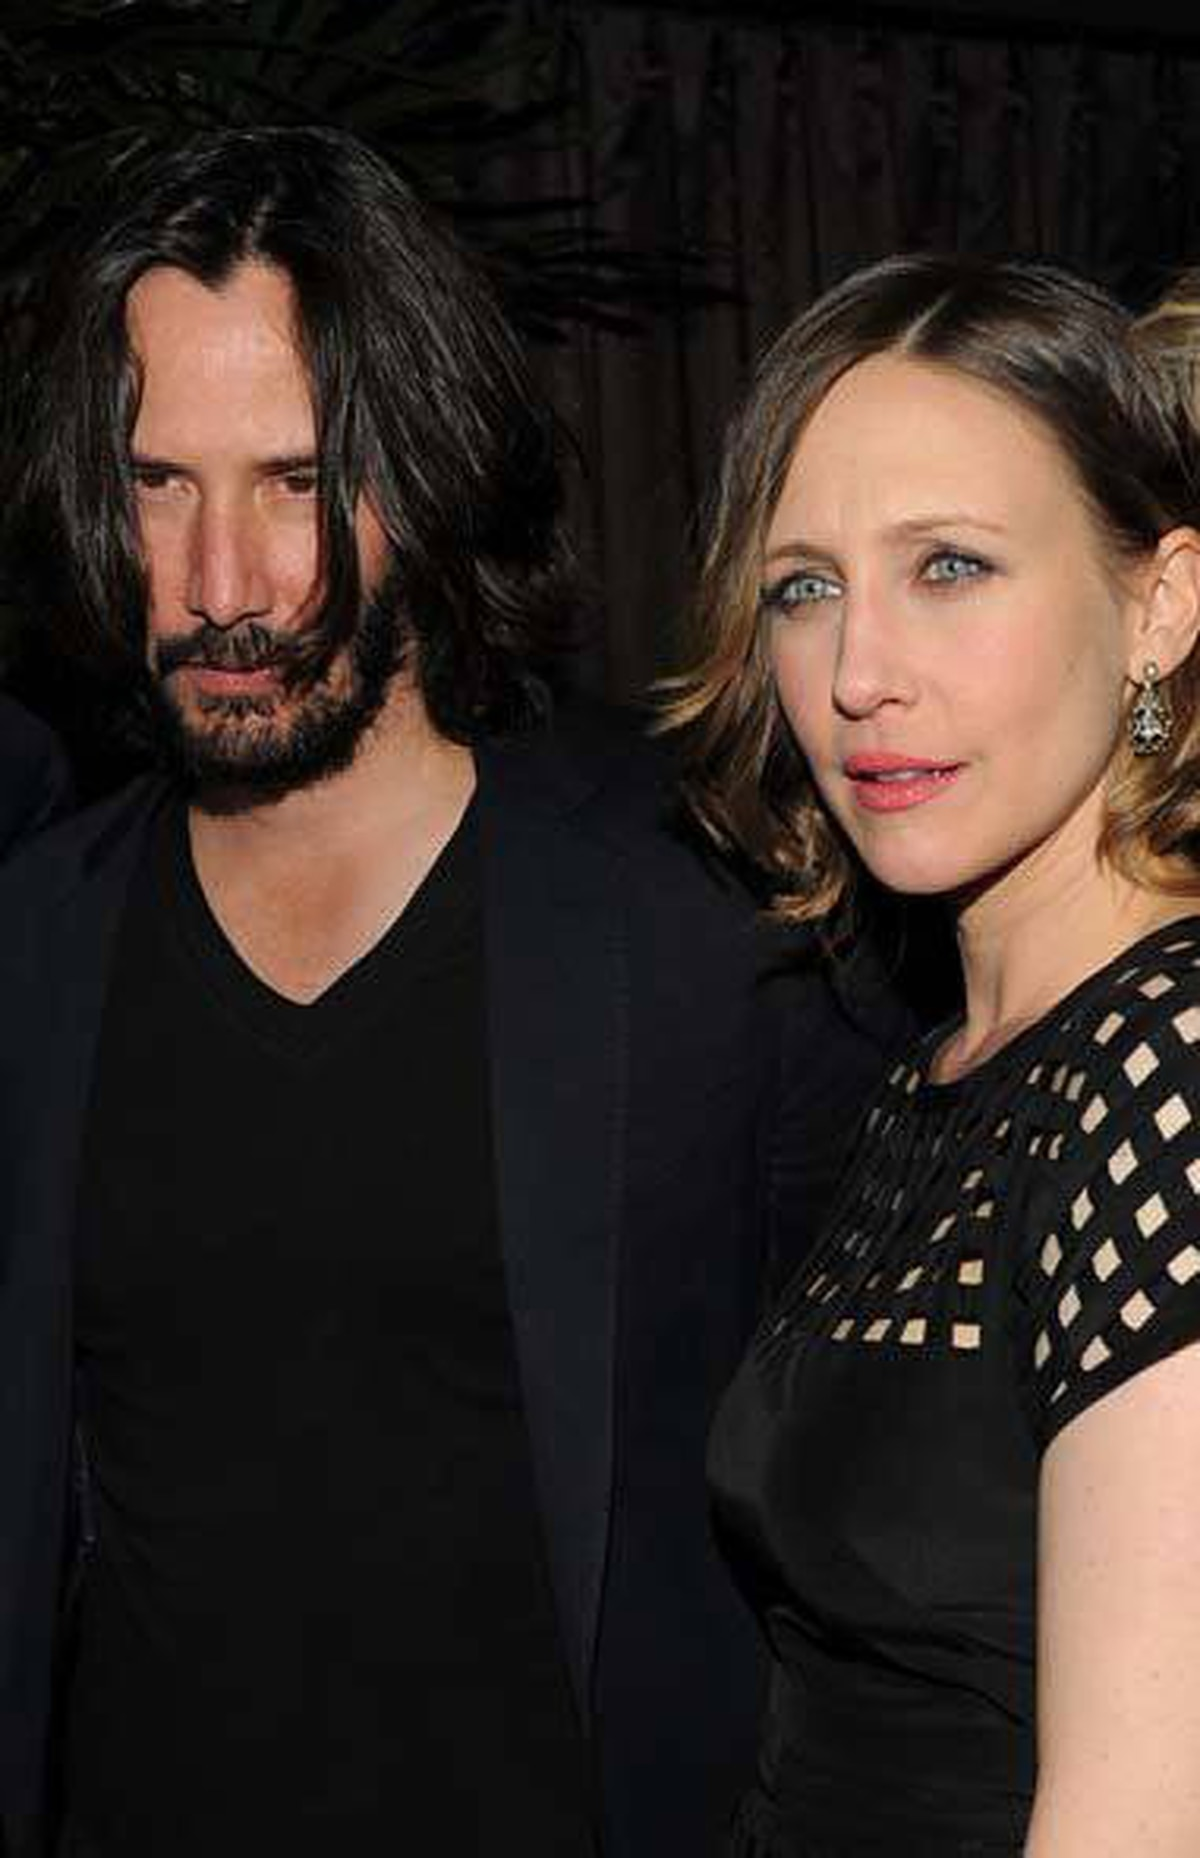 """Canadian method actor Keanu Reeves and actress Vera Farmiga at the """"Henry's Crime"""" after-party in New York on Monday."""